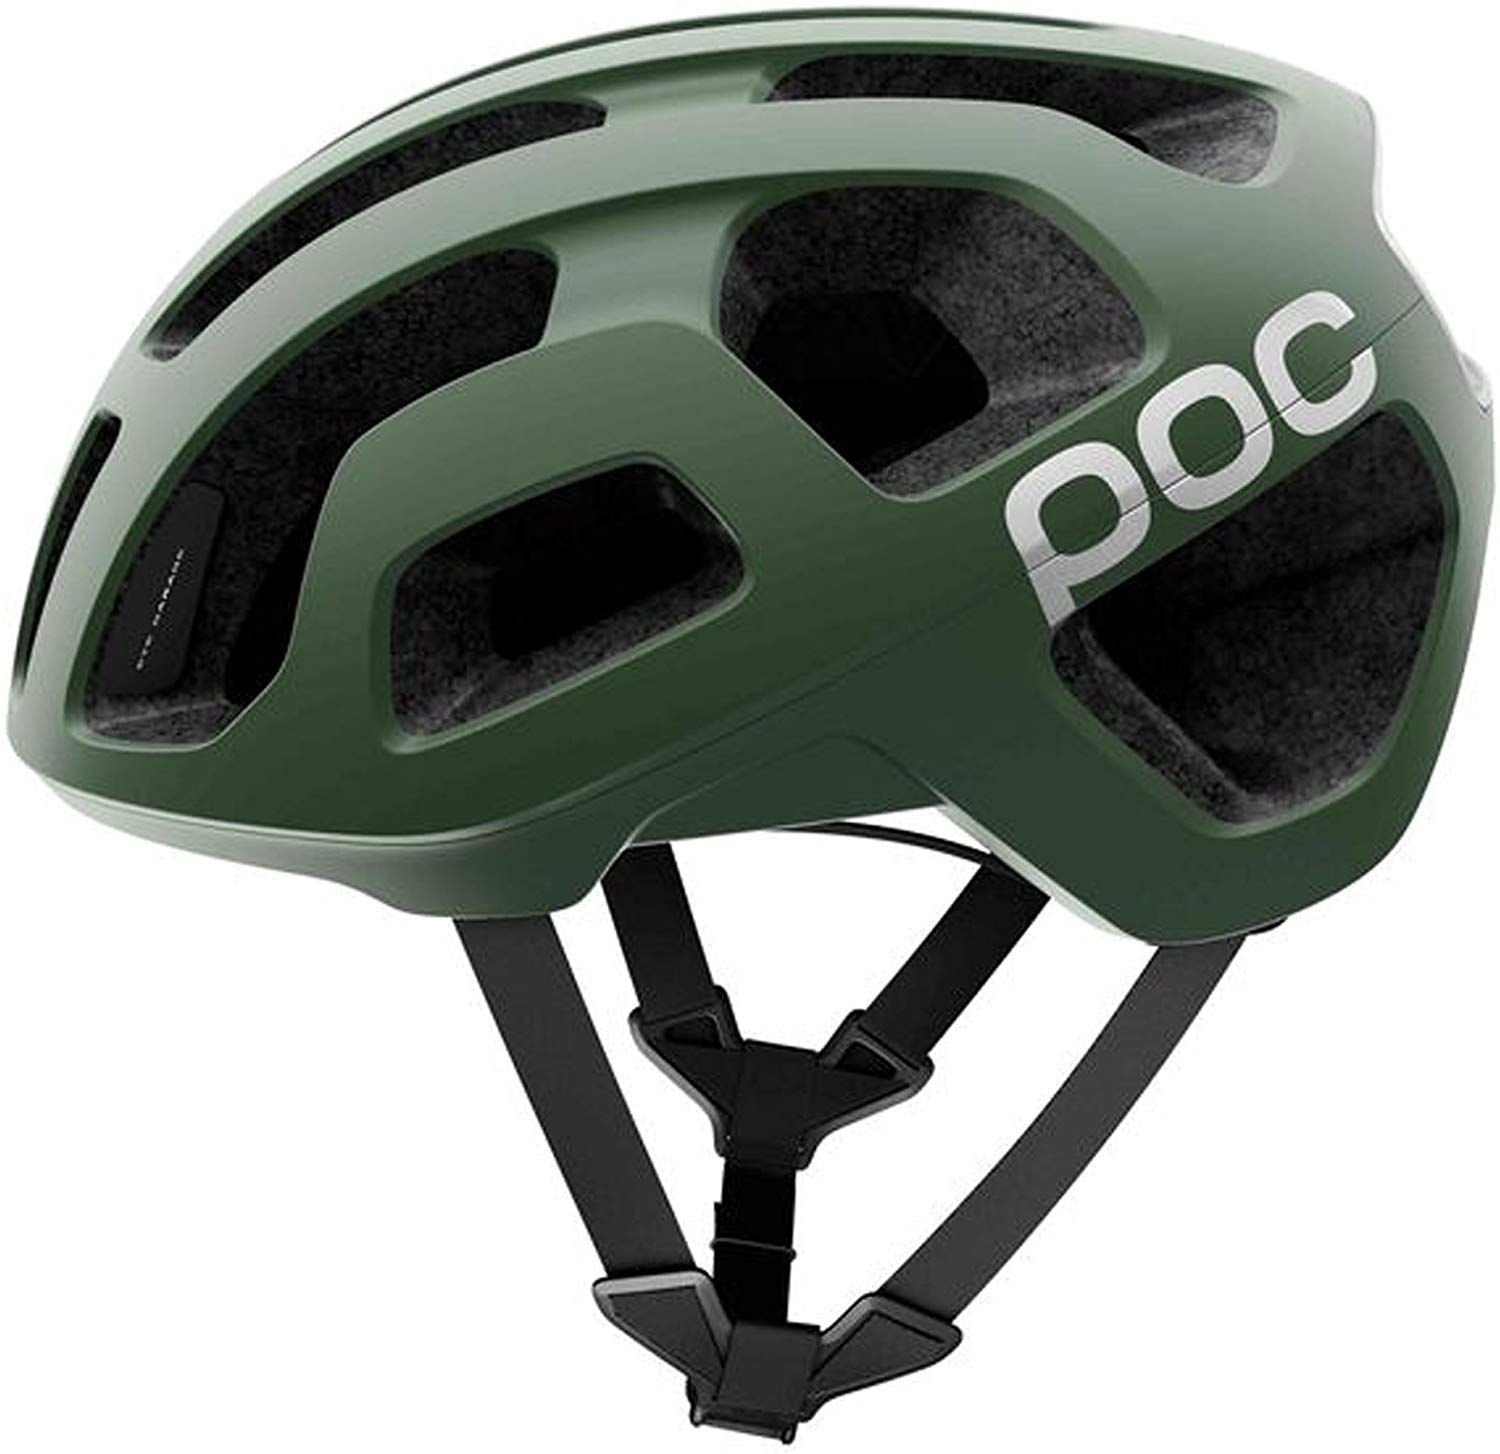 Poc Octal Cpsc Bike Helmet Review By 10toptech If You Want More